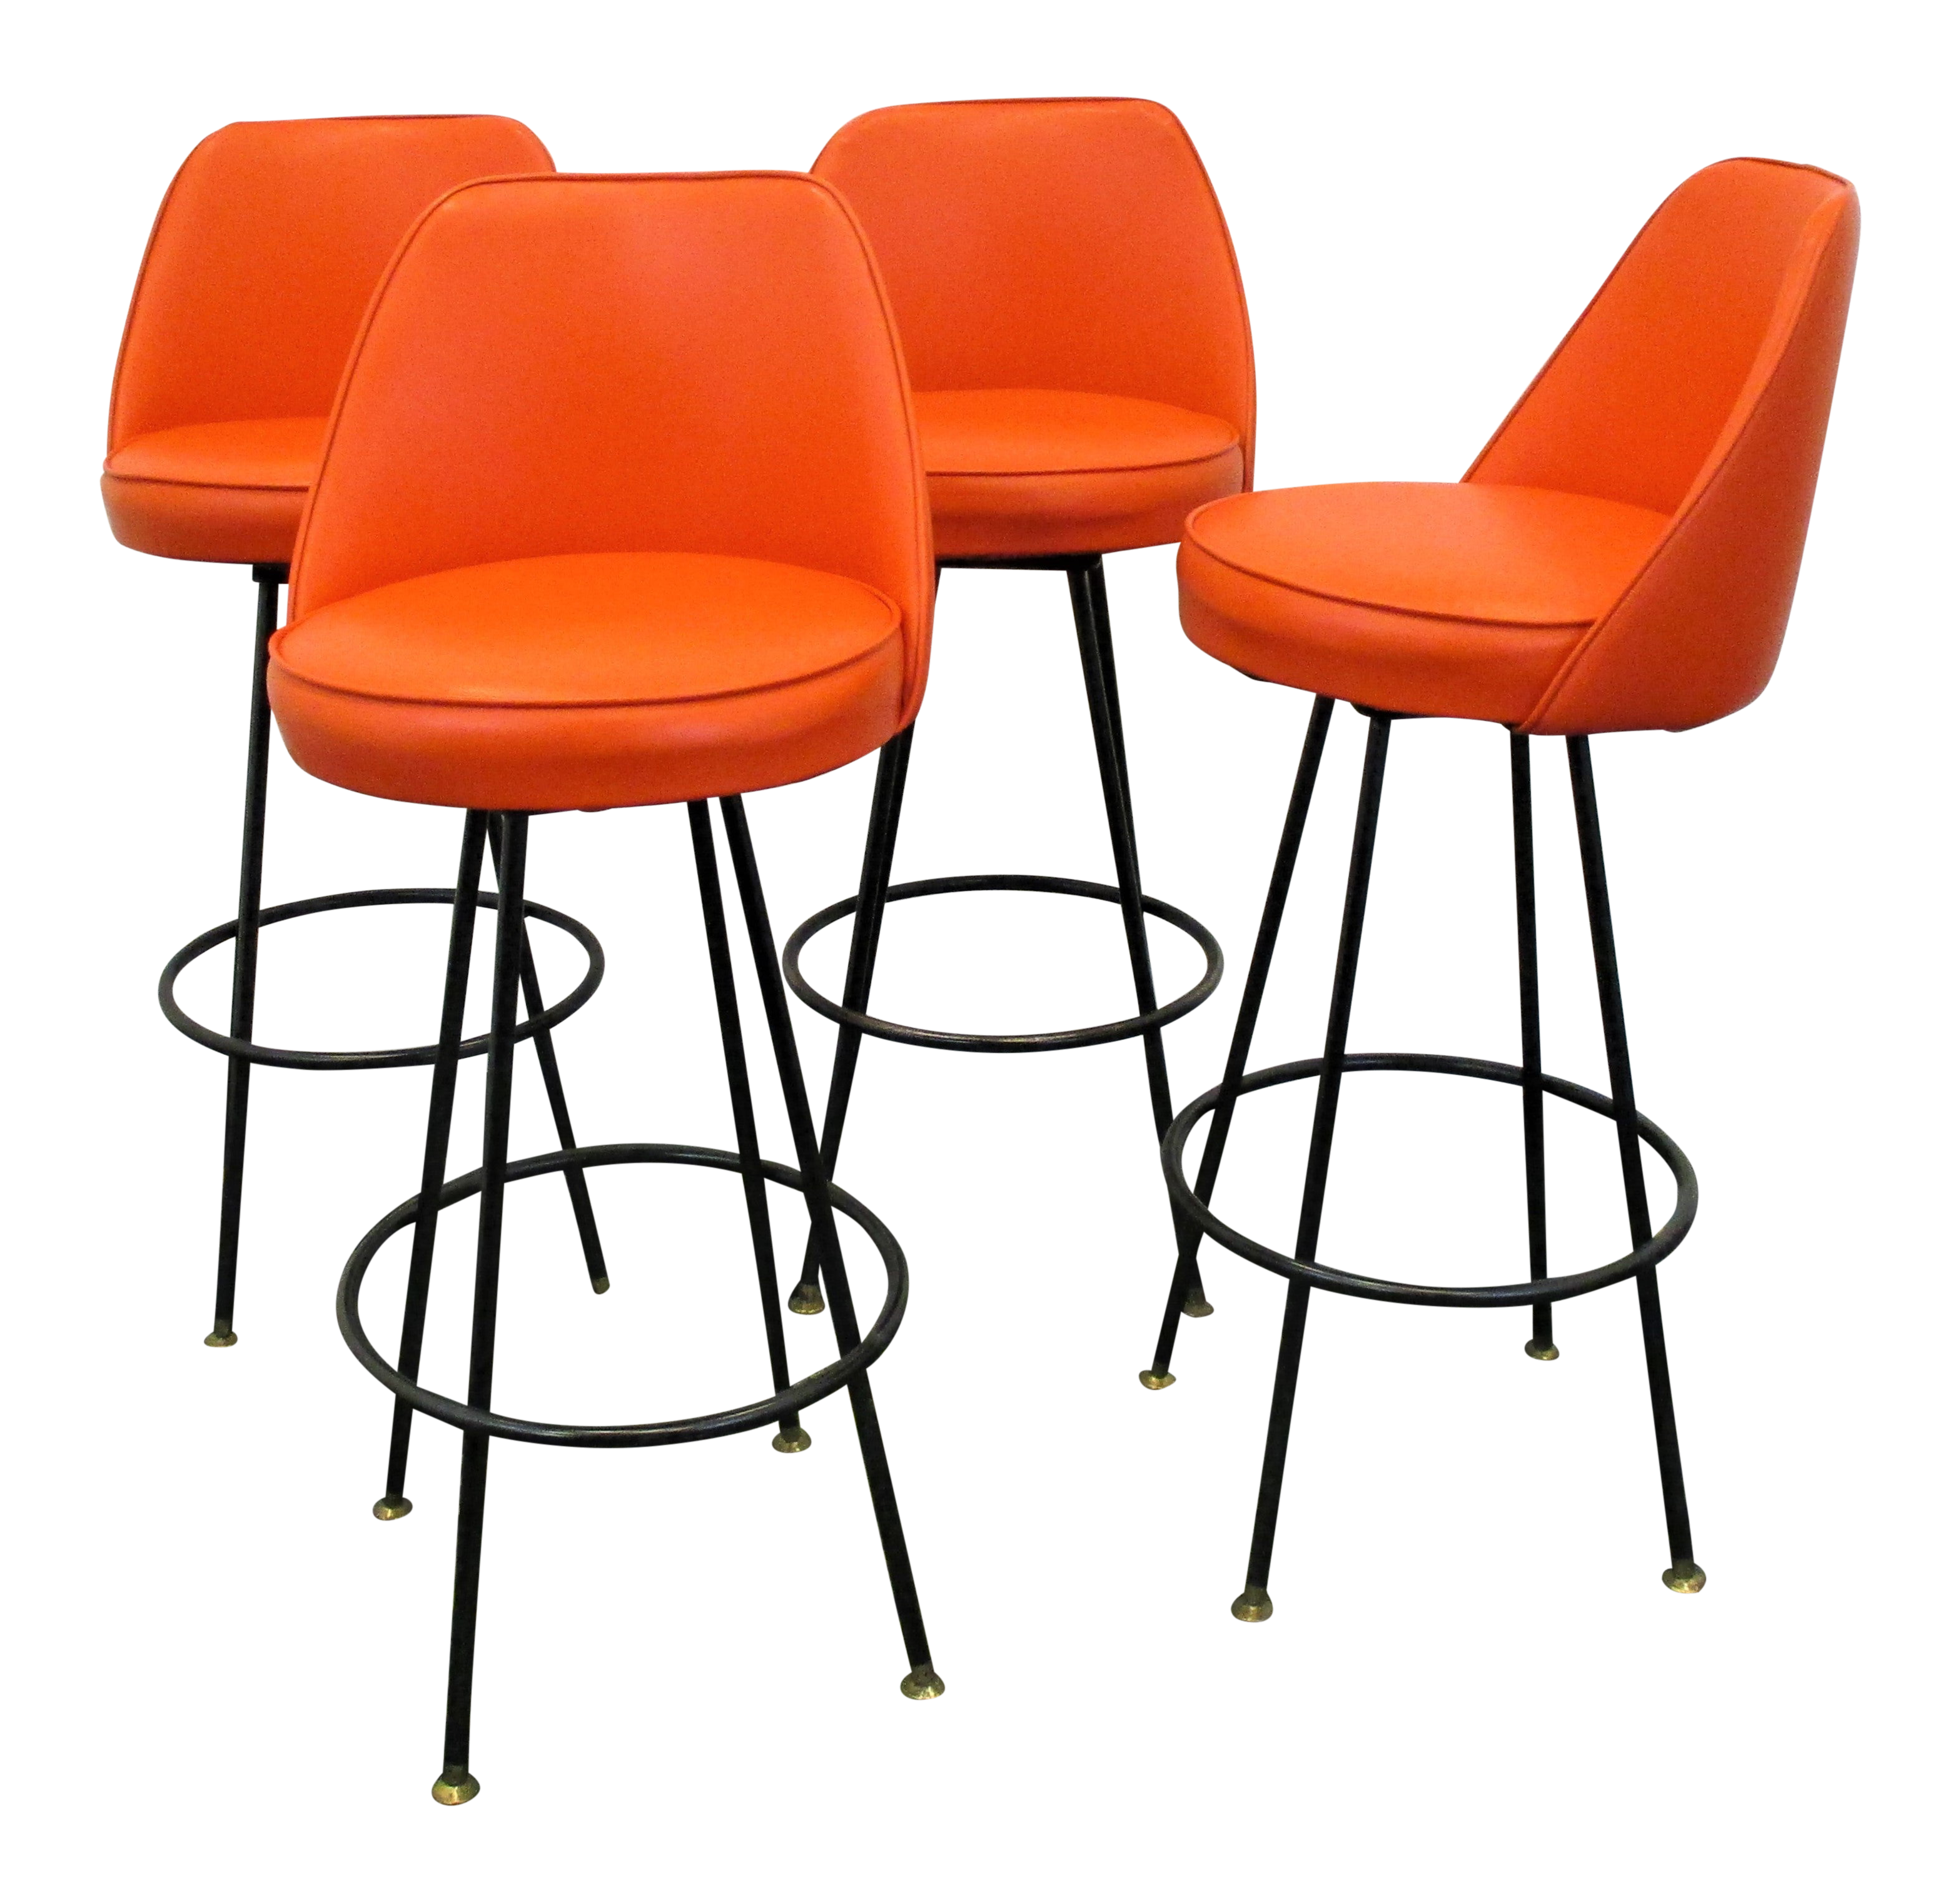 Mid Century Modern Swivel Bar Stools With Original Orange Upholstery Set Of 4 Chairish